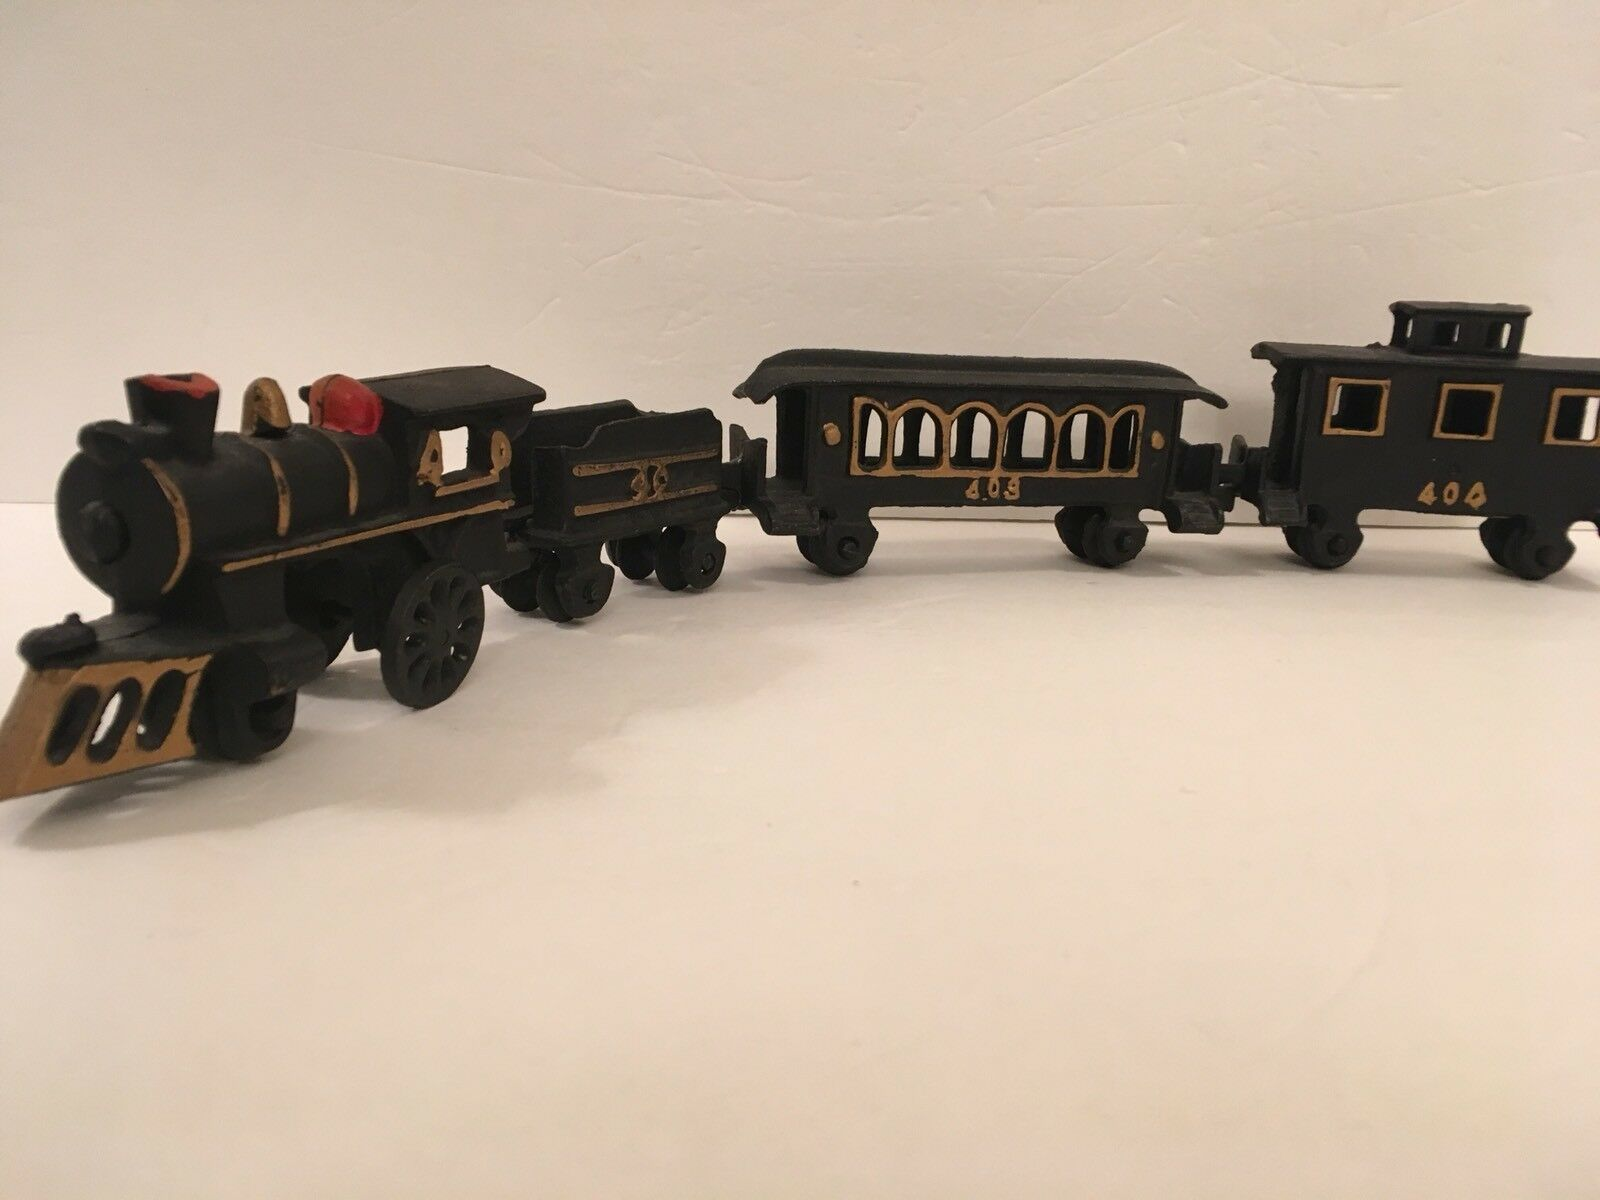 Cast Iron Train Set Marks of 40, 403, 404- 4 Pieces in Total